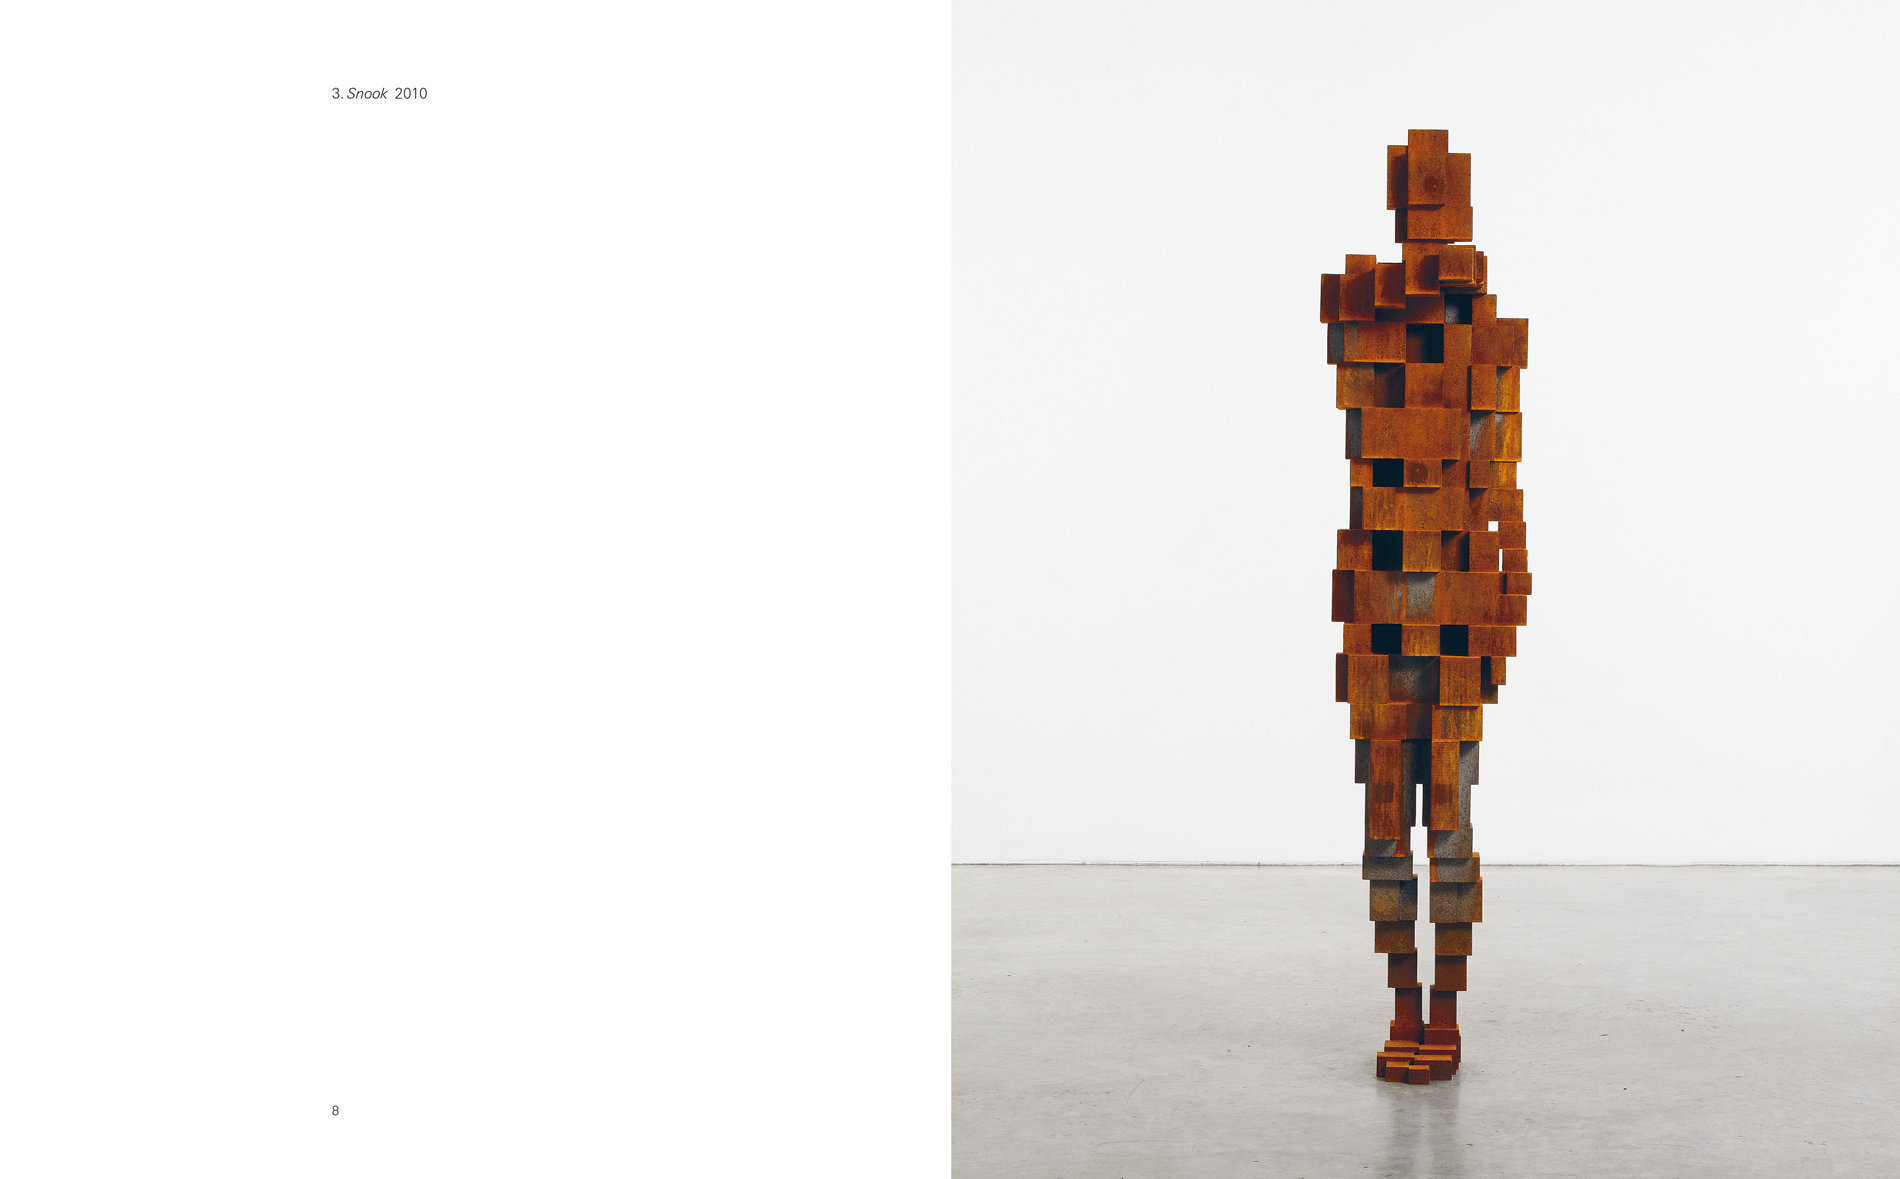 Anthony Gormley